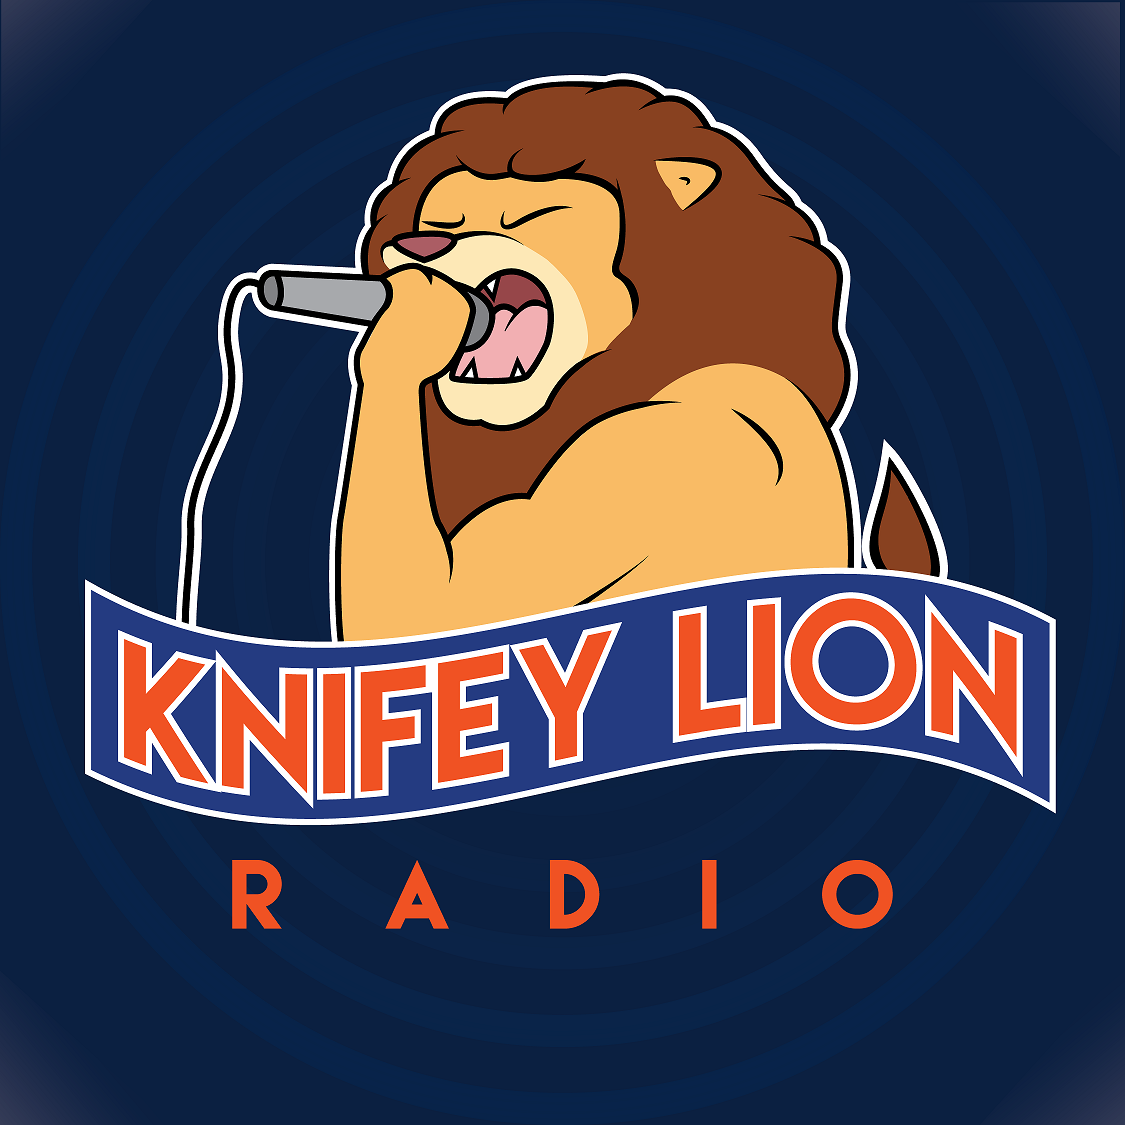 Knifey Lion Radio